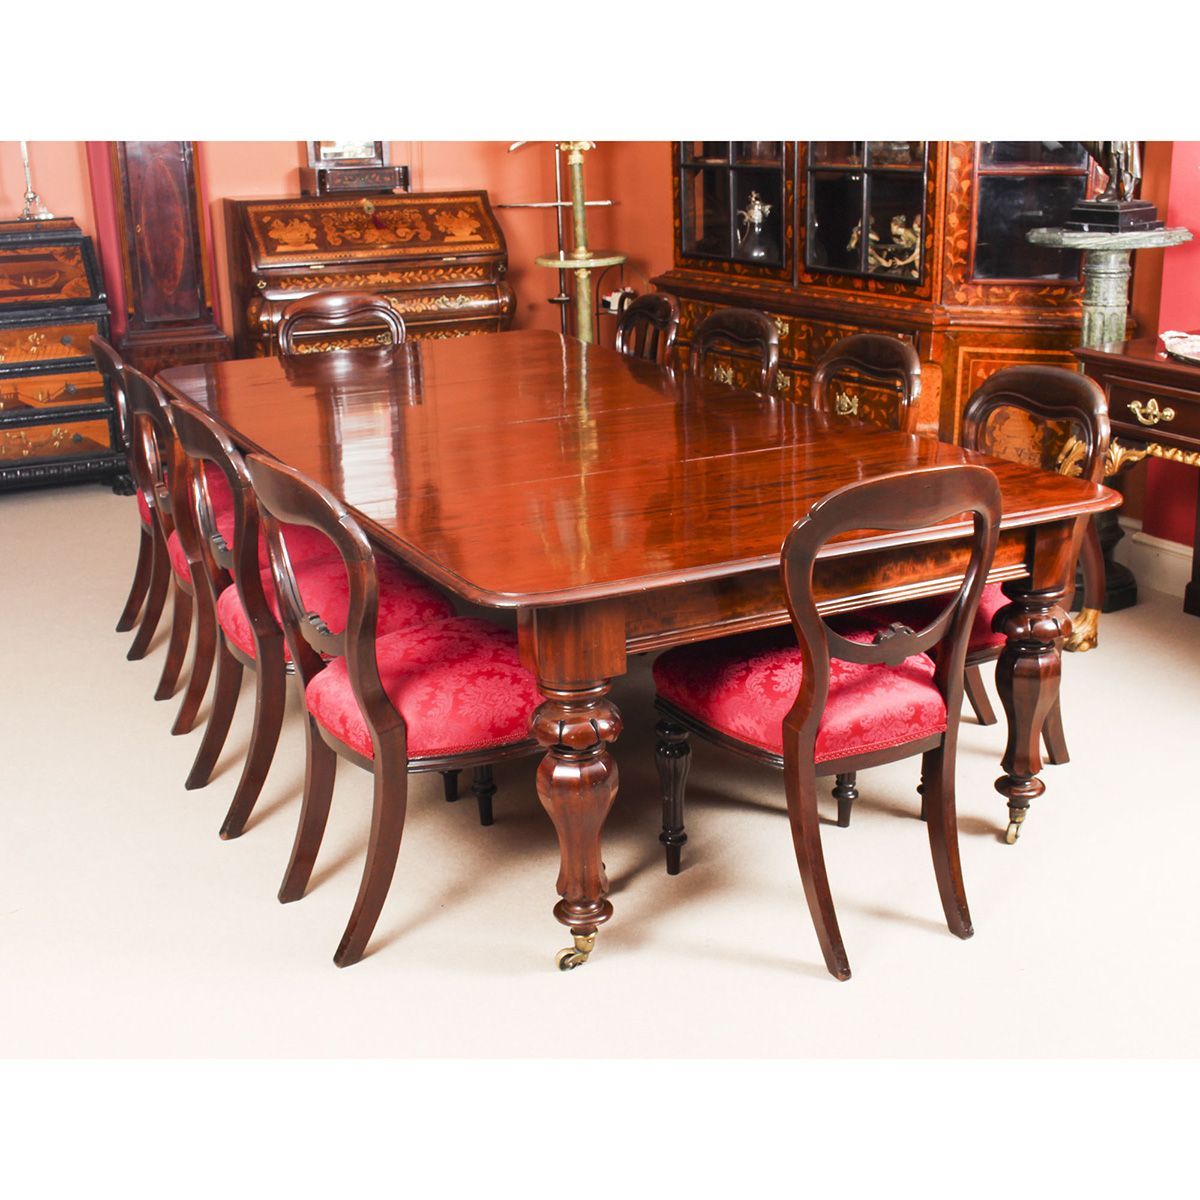 Antique William Iv Mahogany Dining Table Set 10 Chairs Circa 1830 19th C Dining Table Buy Dining Table